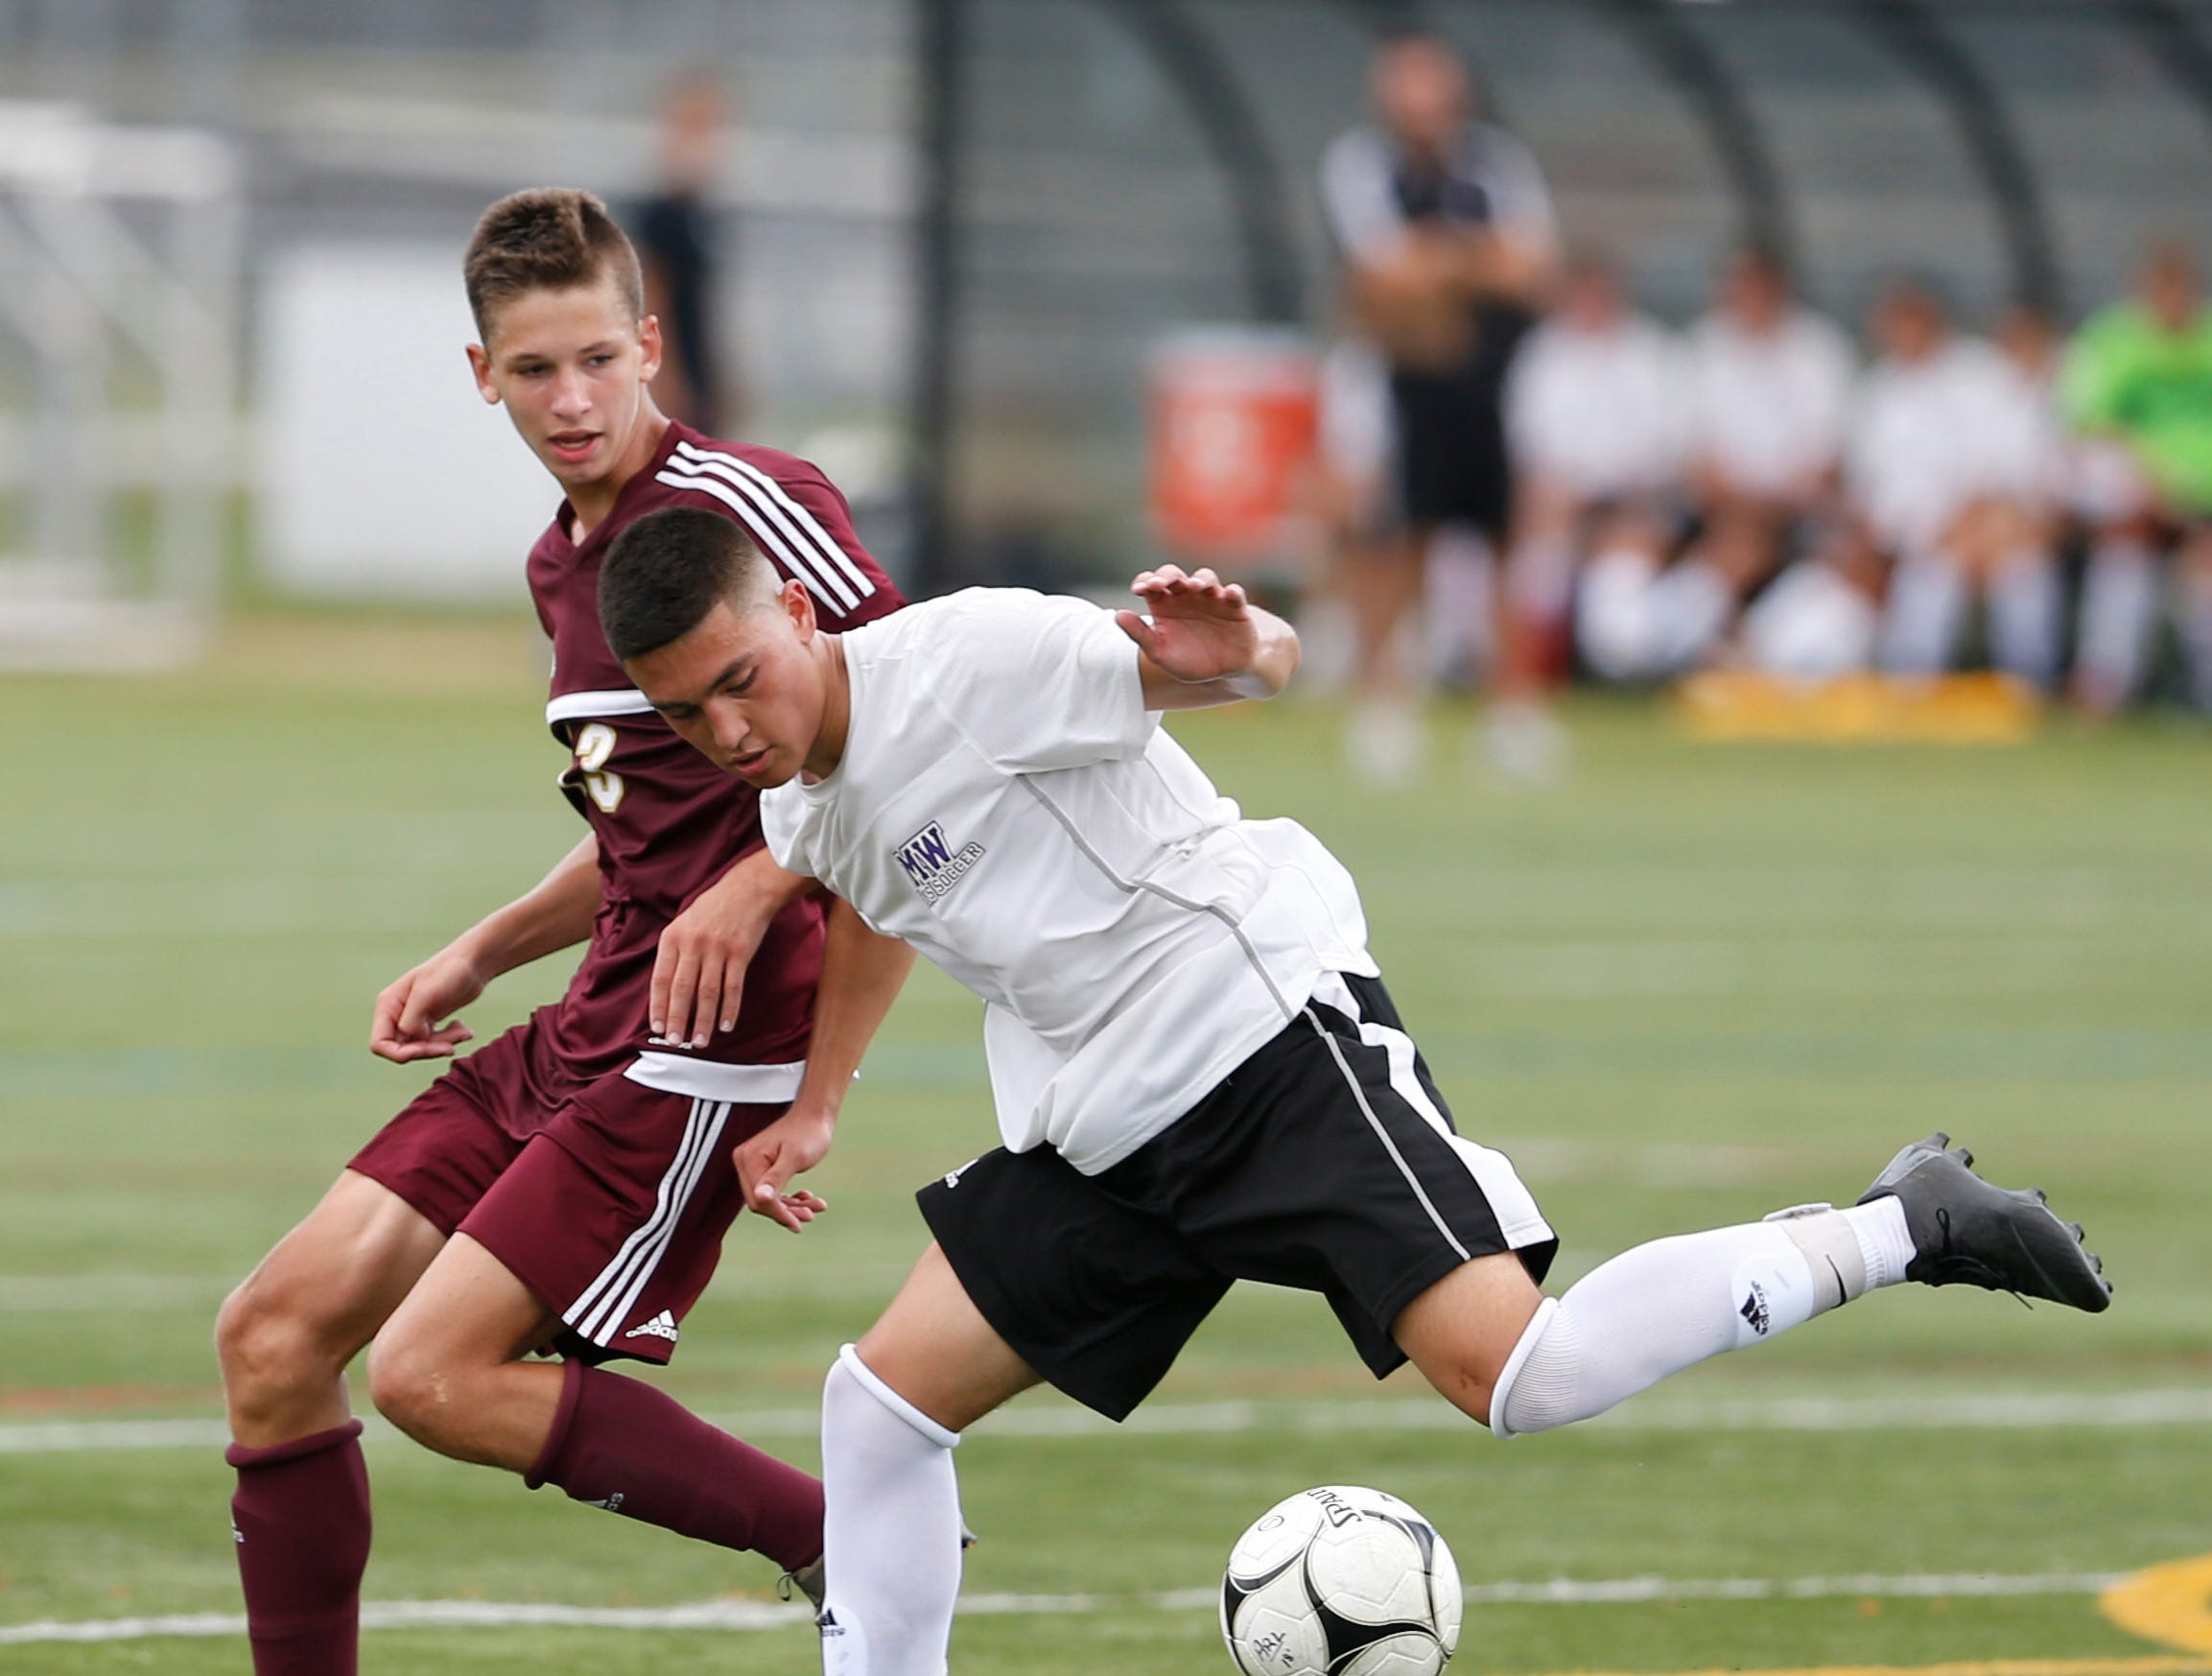 Action from Thursday's boys soccer game between Arlington and Monroe Woodbury in Freedom Plains on August 30, 2018.